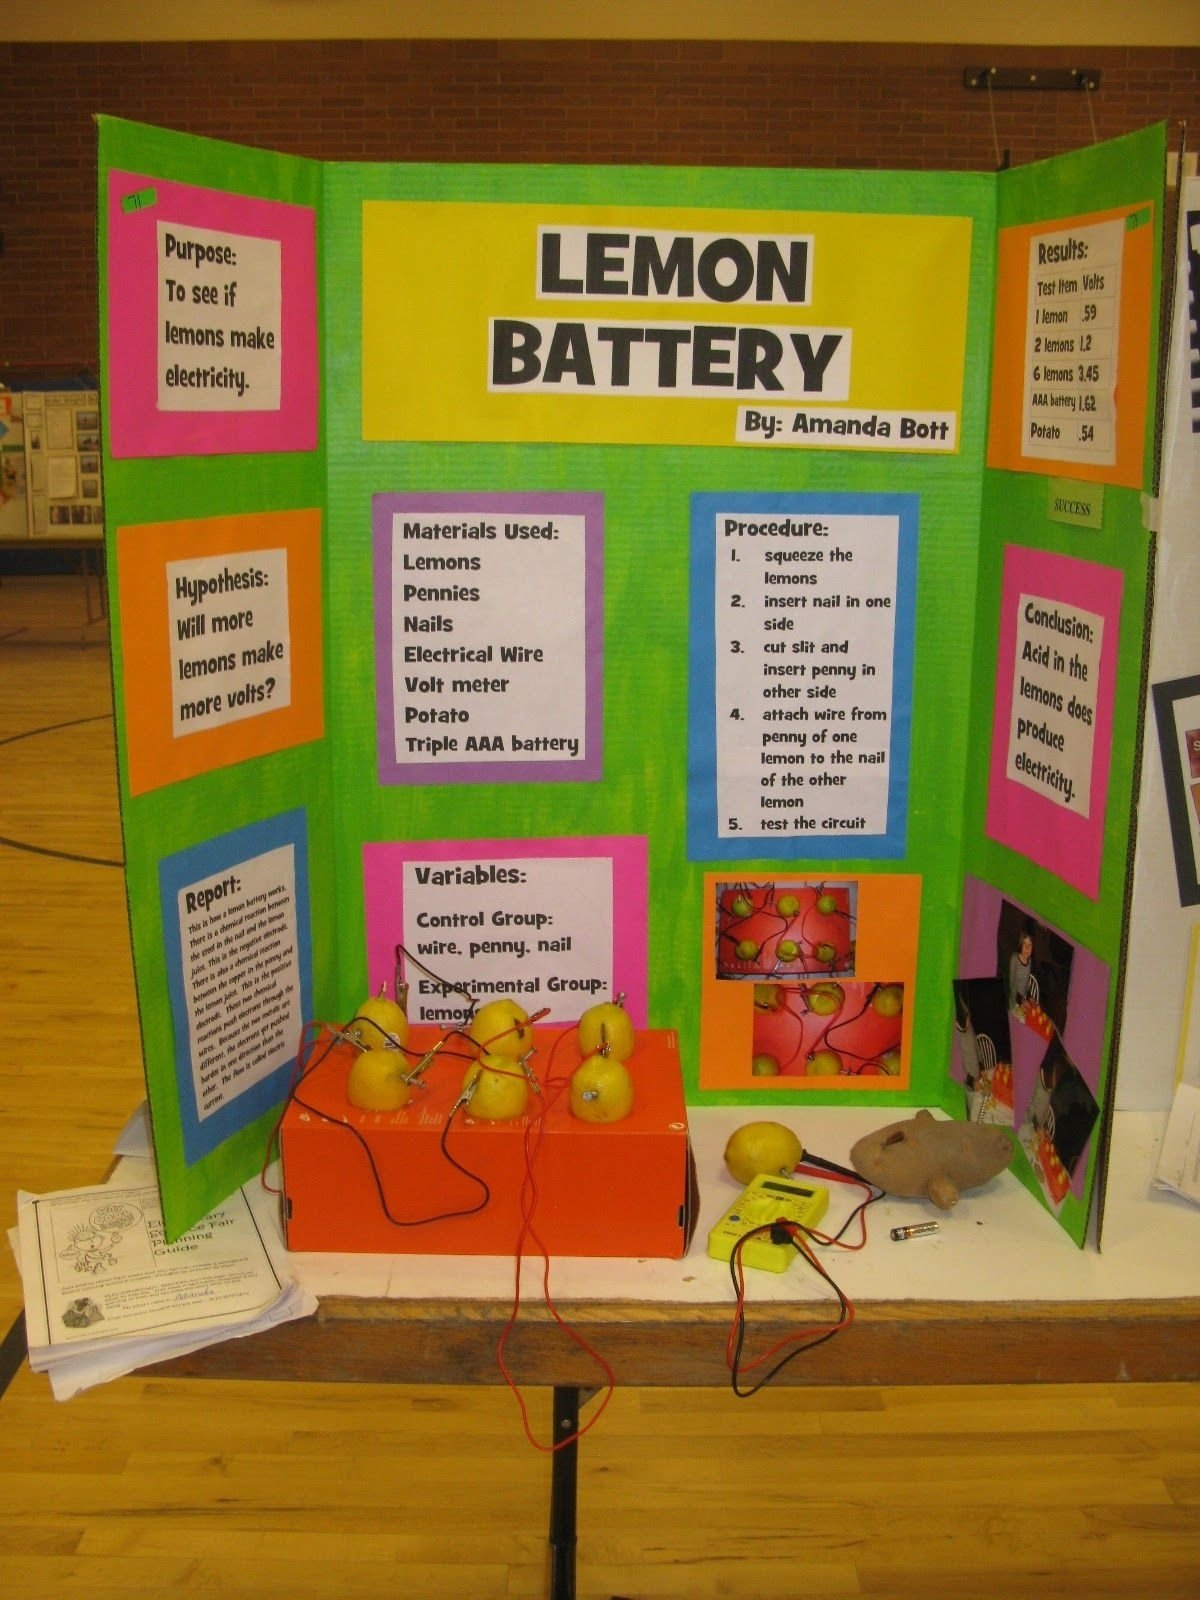 10 Cute Science Project Ideas For Kids the science of my life updated declo science fair with newspaper 21 2021